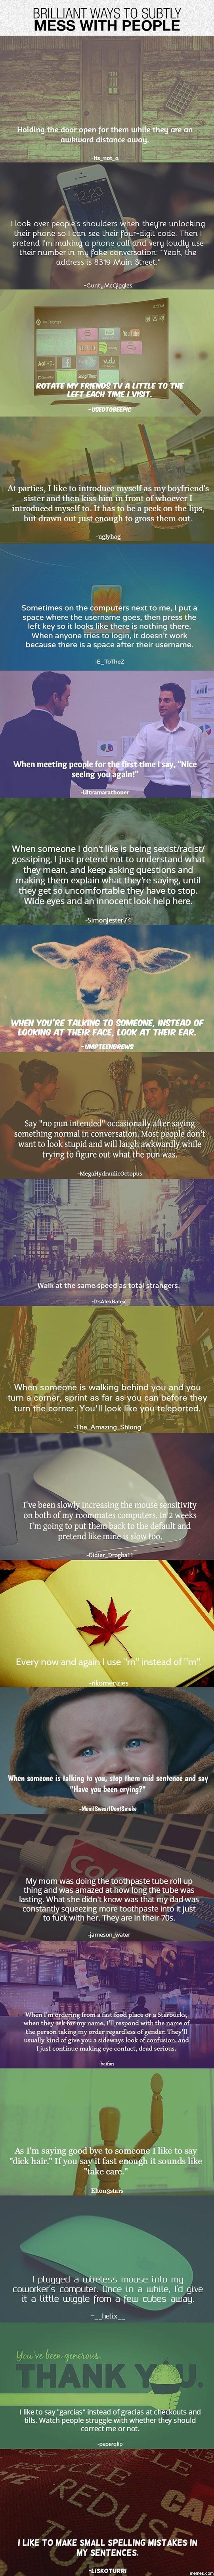 Brilliant Ways to Subtly Mess With People